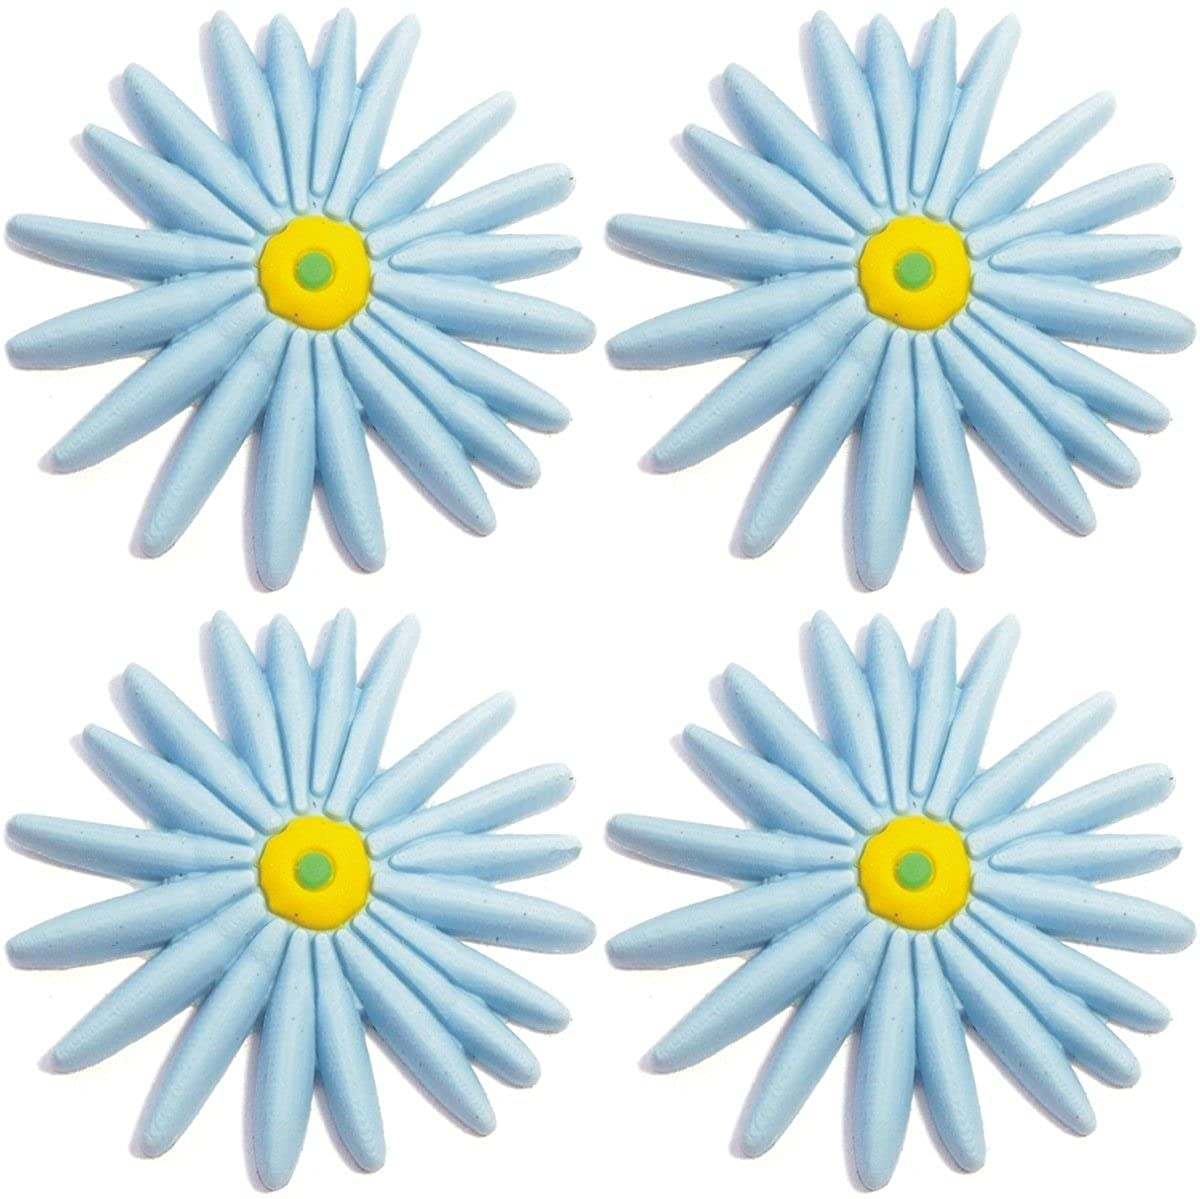 Four (4) of Flower Light Blue Rubber Charms for Wristbands and Shoes